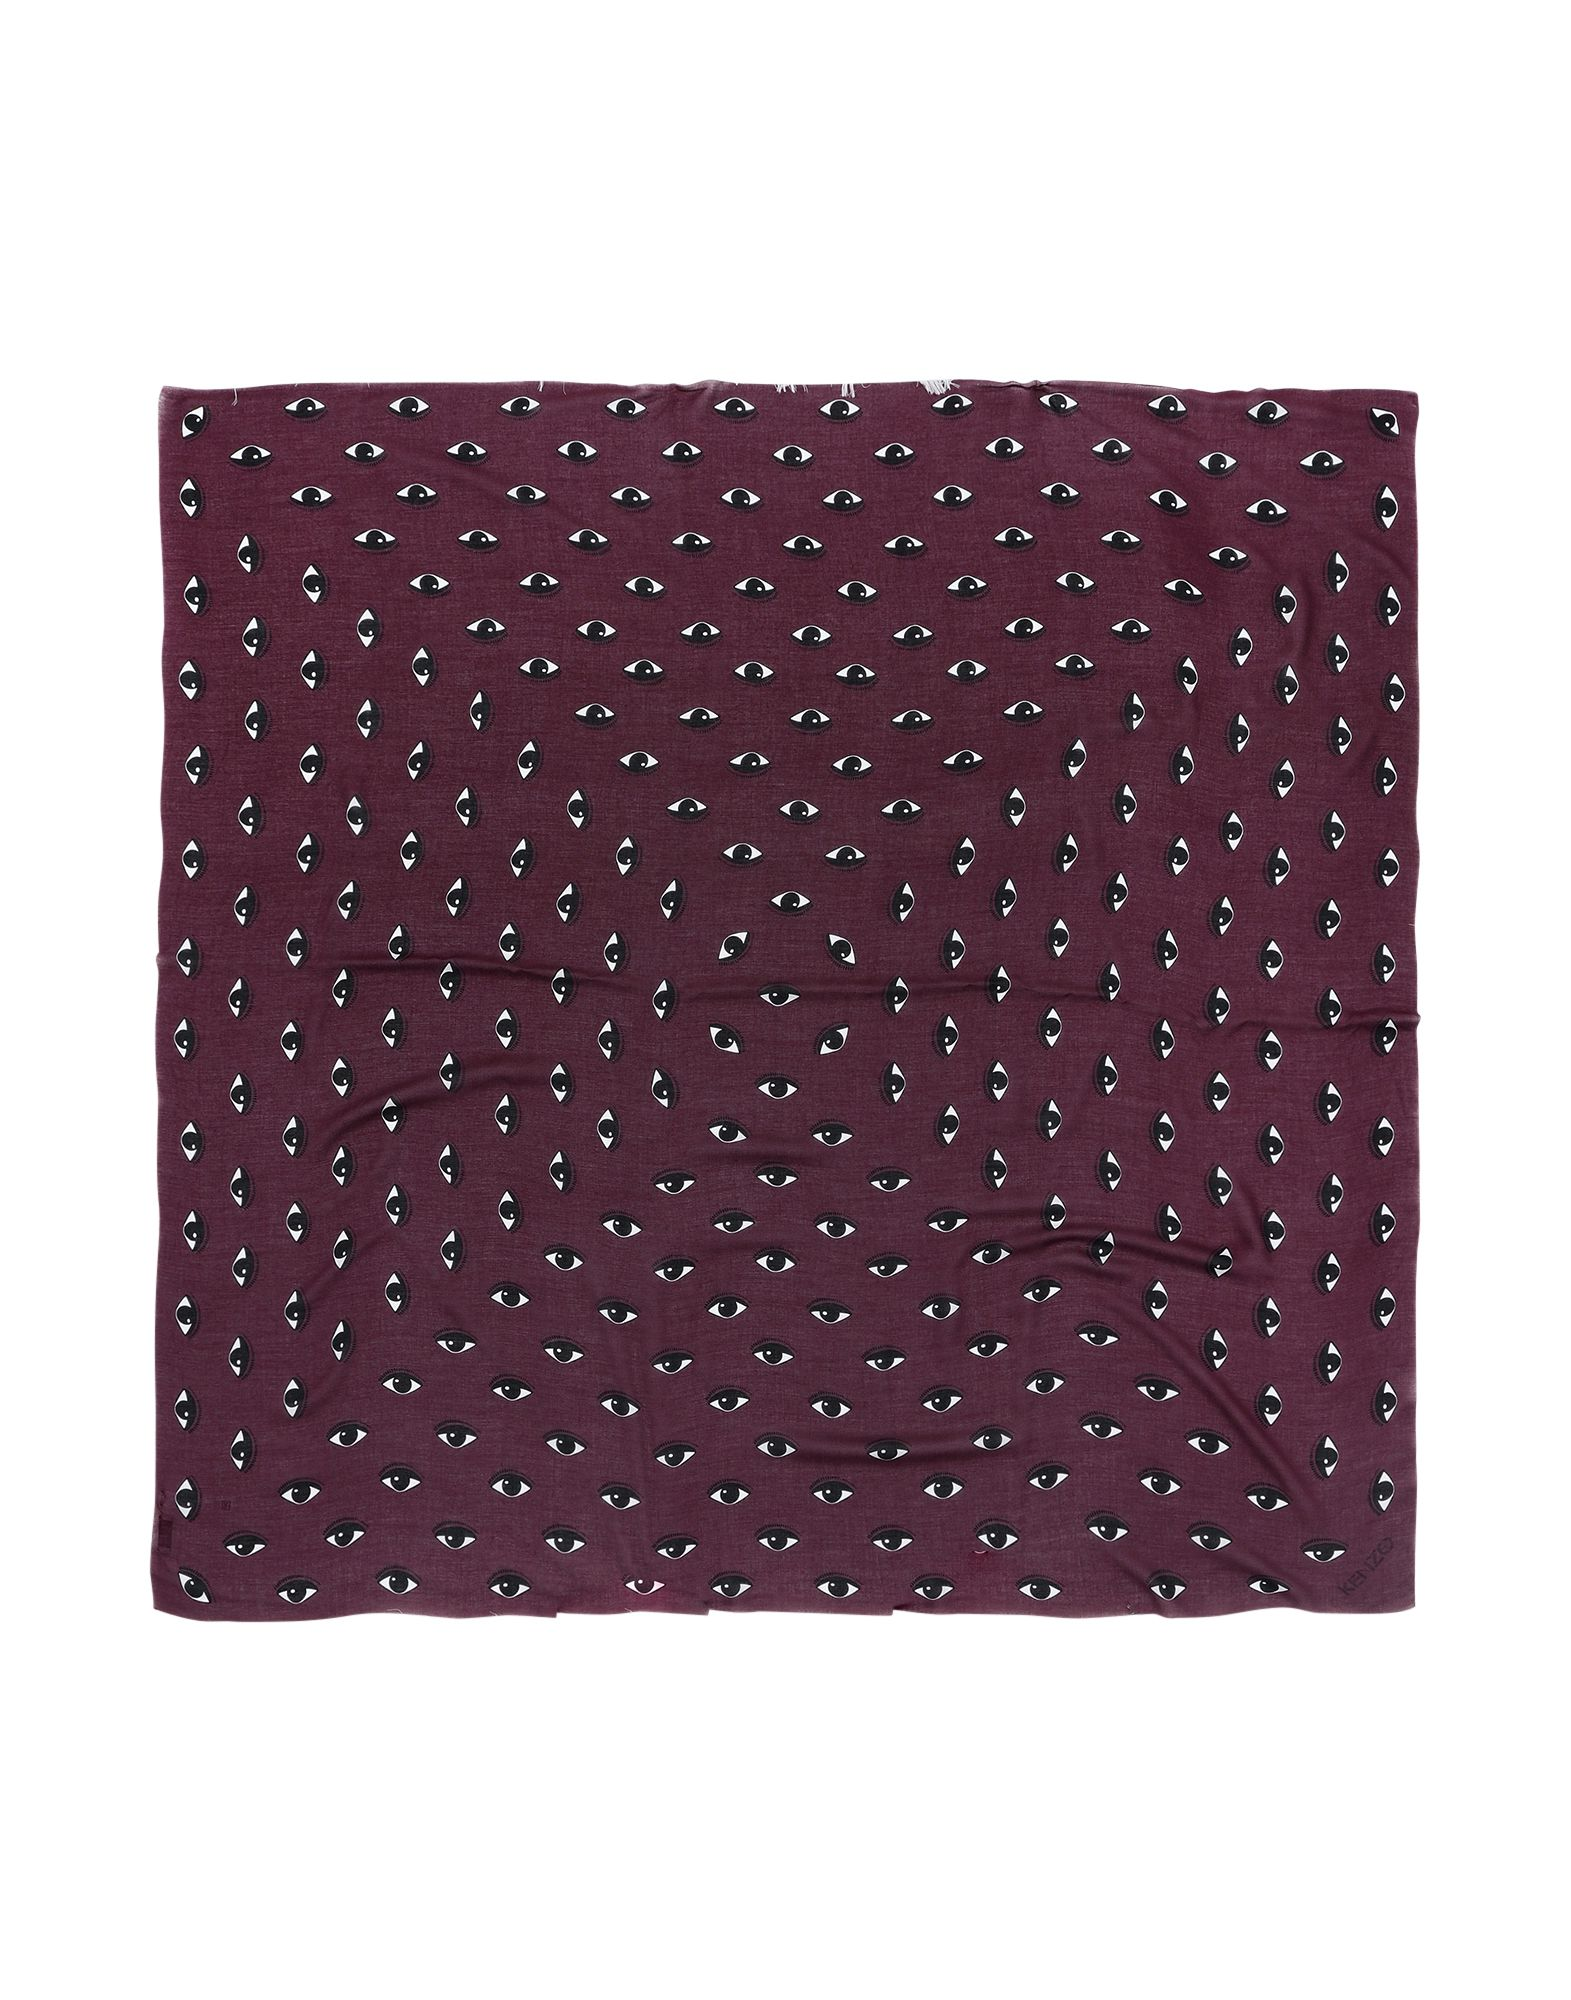 Kenzo Square Scarf In Maroon